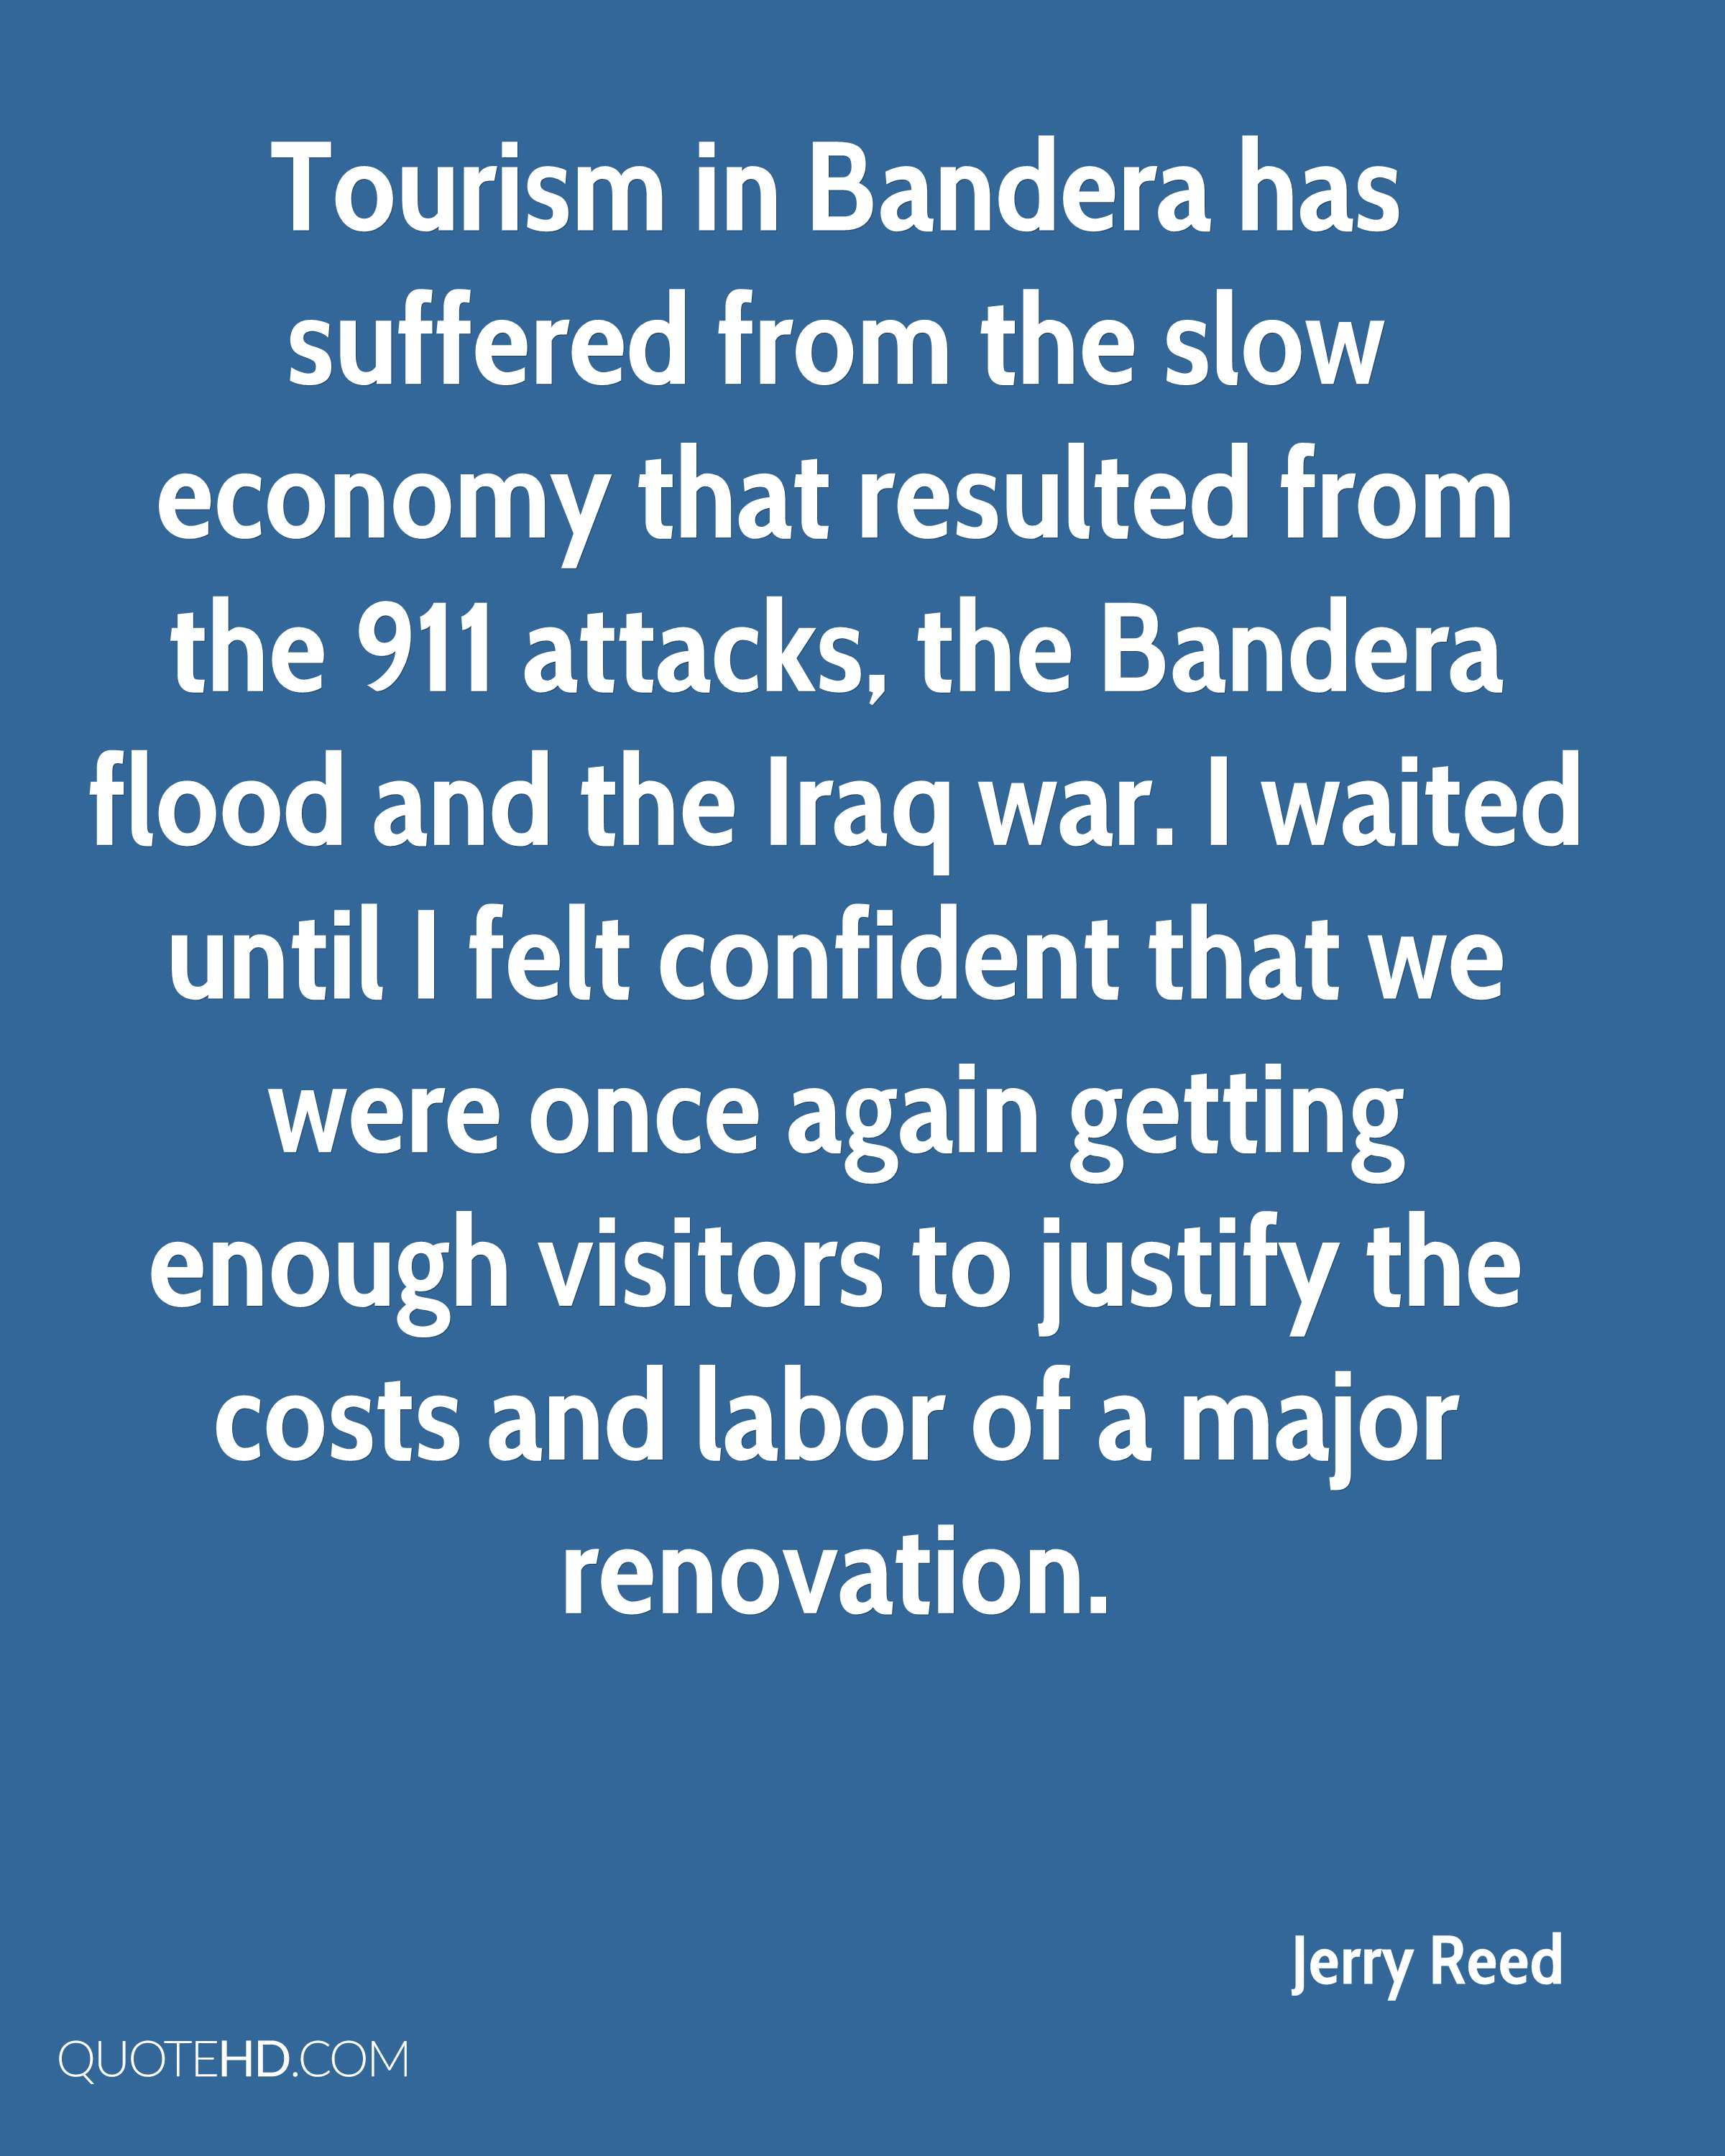 Tourism in Bandera has suffered from the slow economy that resulted from the 911 attacks, the Bandera flood and the Iraq war. I waited until I felt confident that we were once again getting enough visitors to justify the costs and labor of a major renovation.